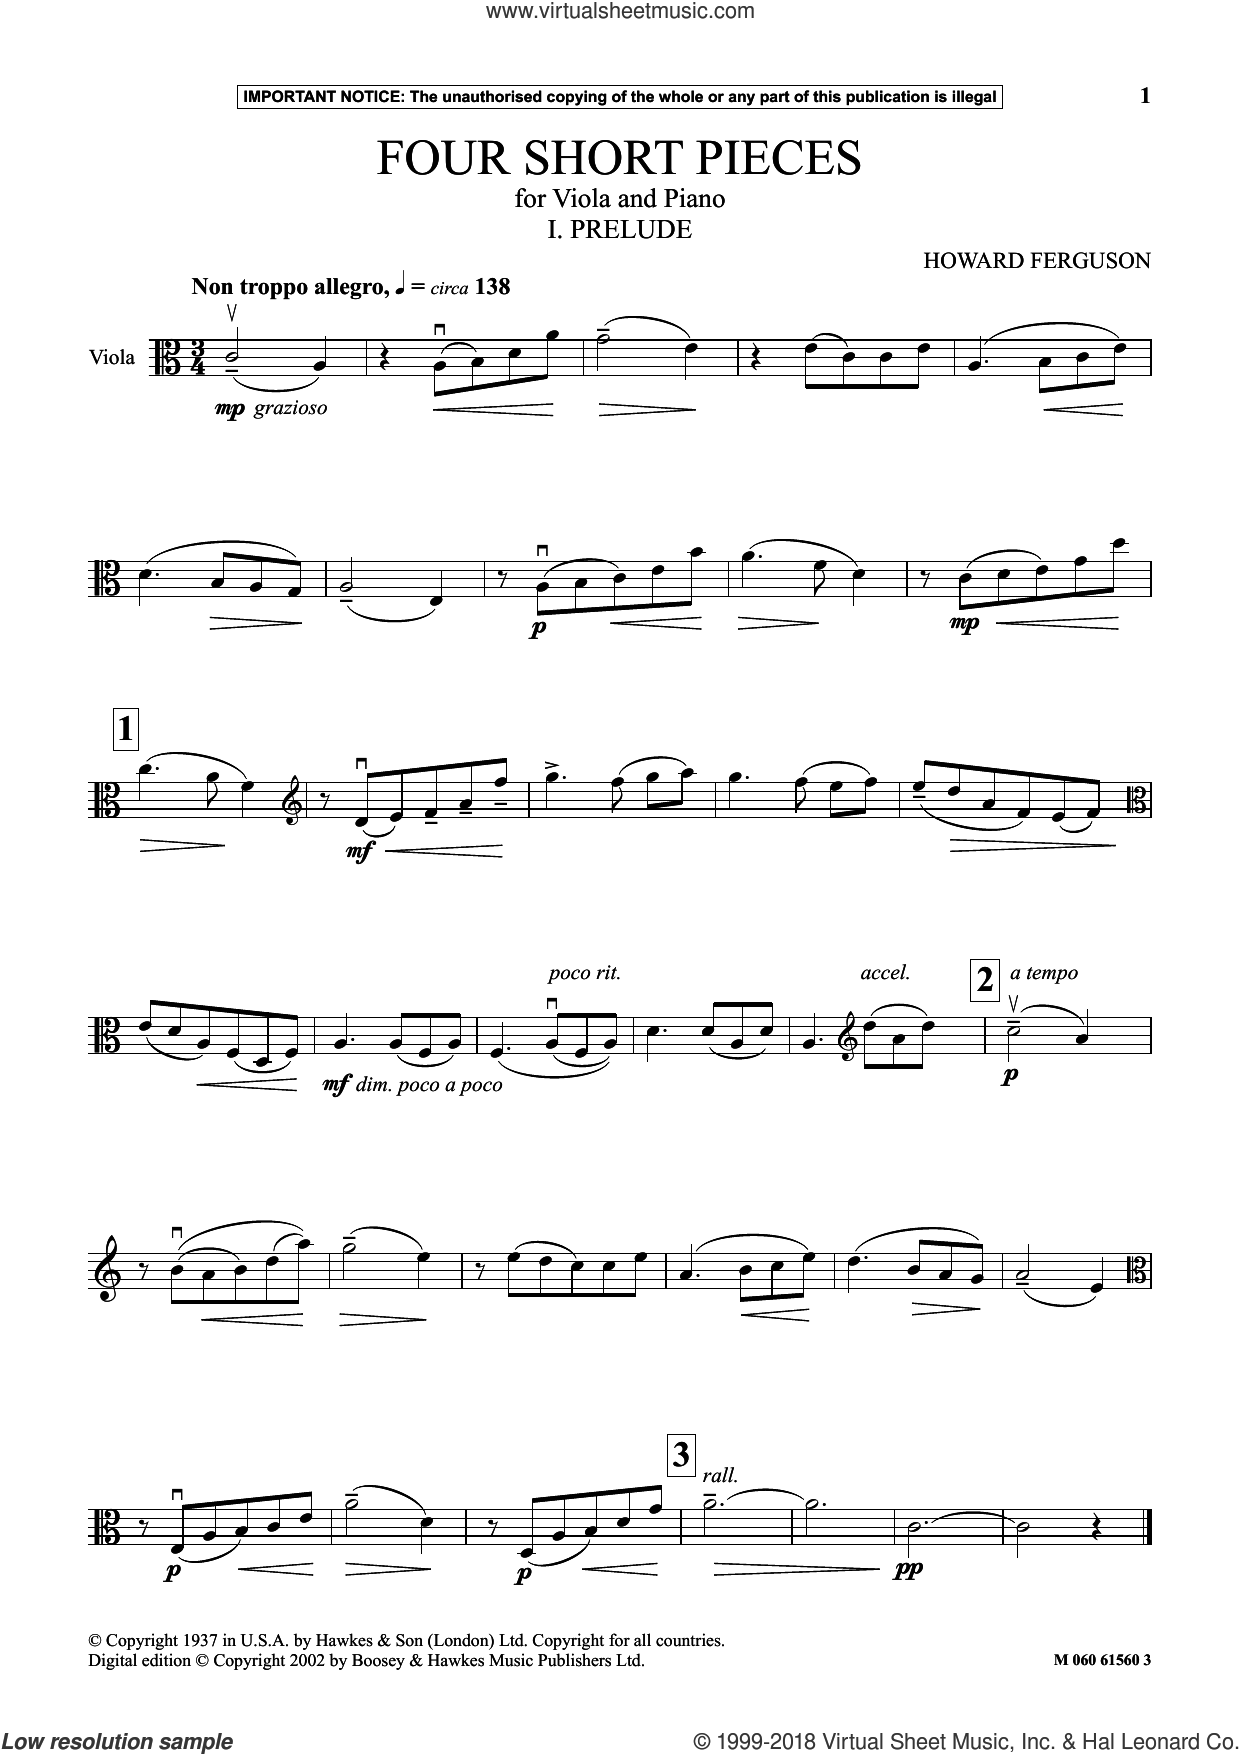 I. Prelude (from Four Short Pieces For Viola And Piano) sheet music for viola solo by Howard Ferguson, classical score, intermediate skill level